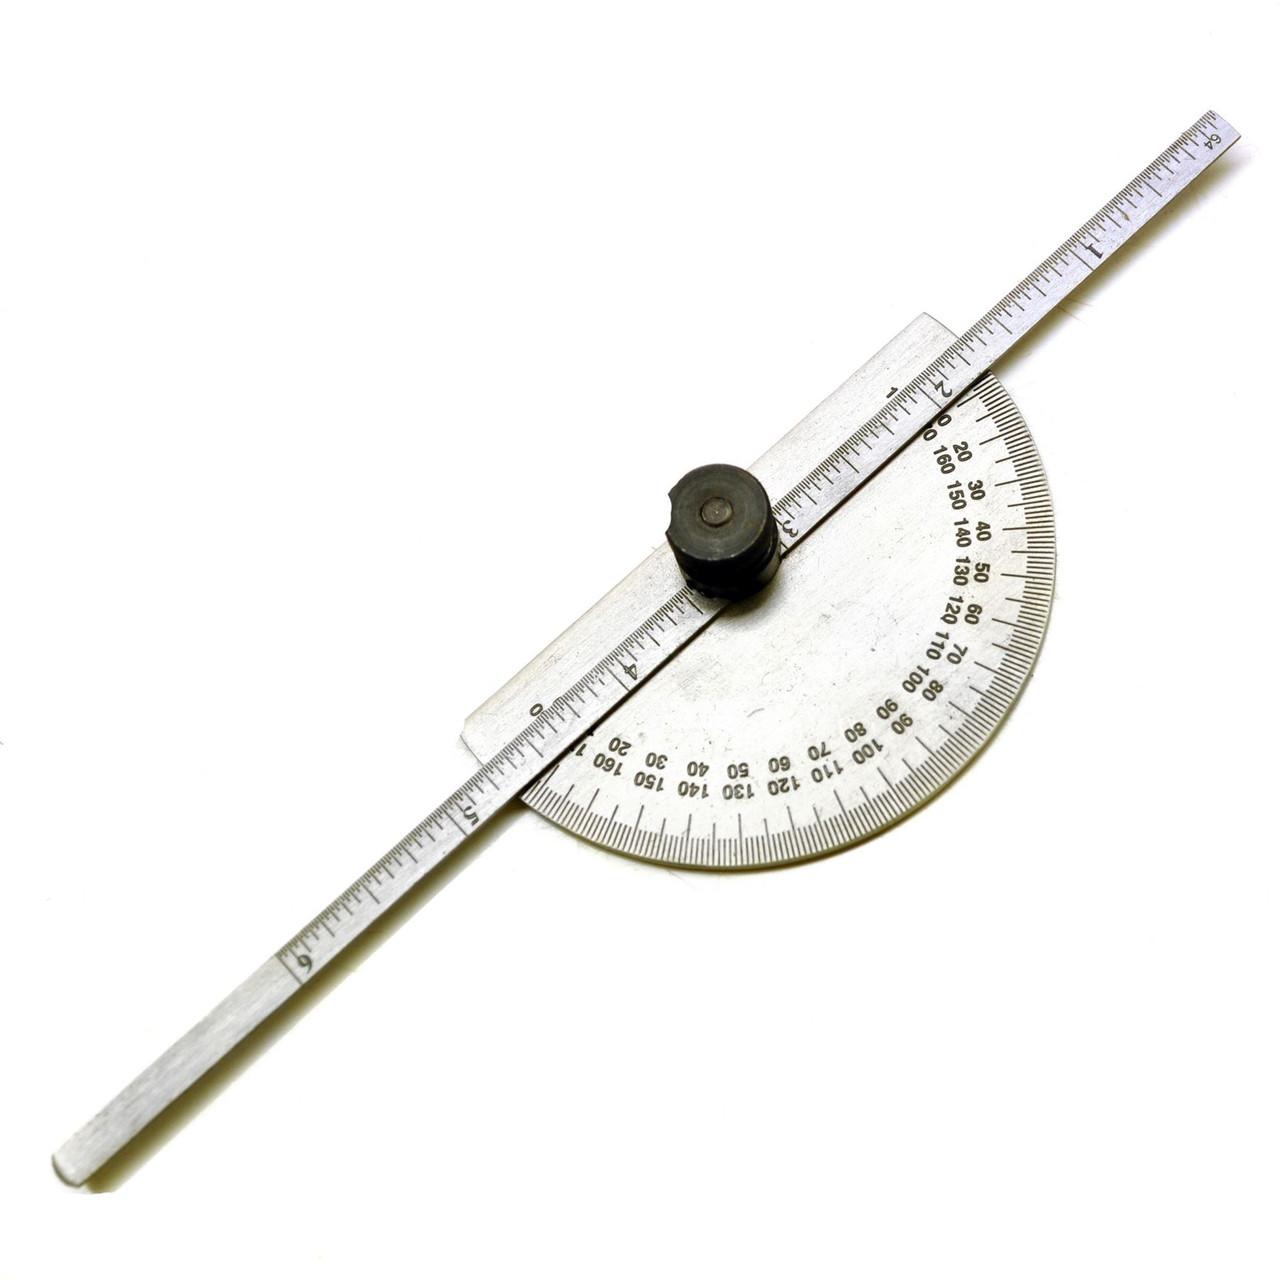 Engineers Metal Protractor with Depth Gauge Metric and Imperial Scale Sil107